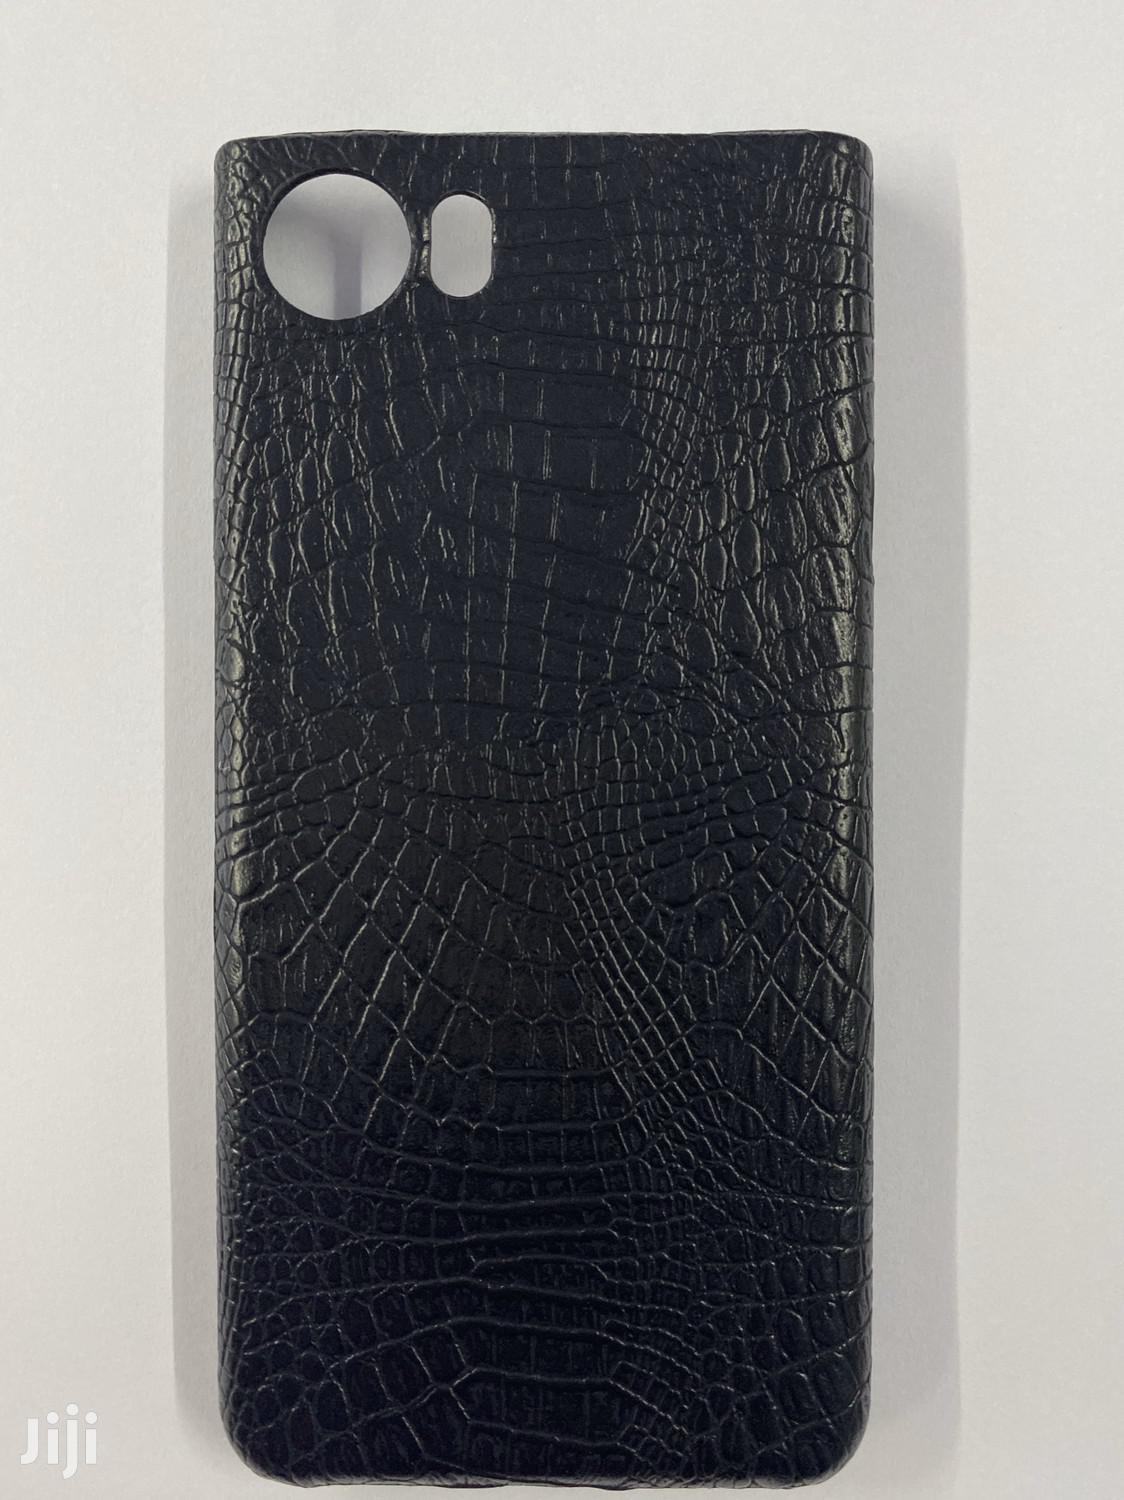 Leather Case for Blackberry Keyone | Accessories for Mobile Phones & Tablets for sale in Nairobi Central, Nairobi, Kenya